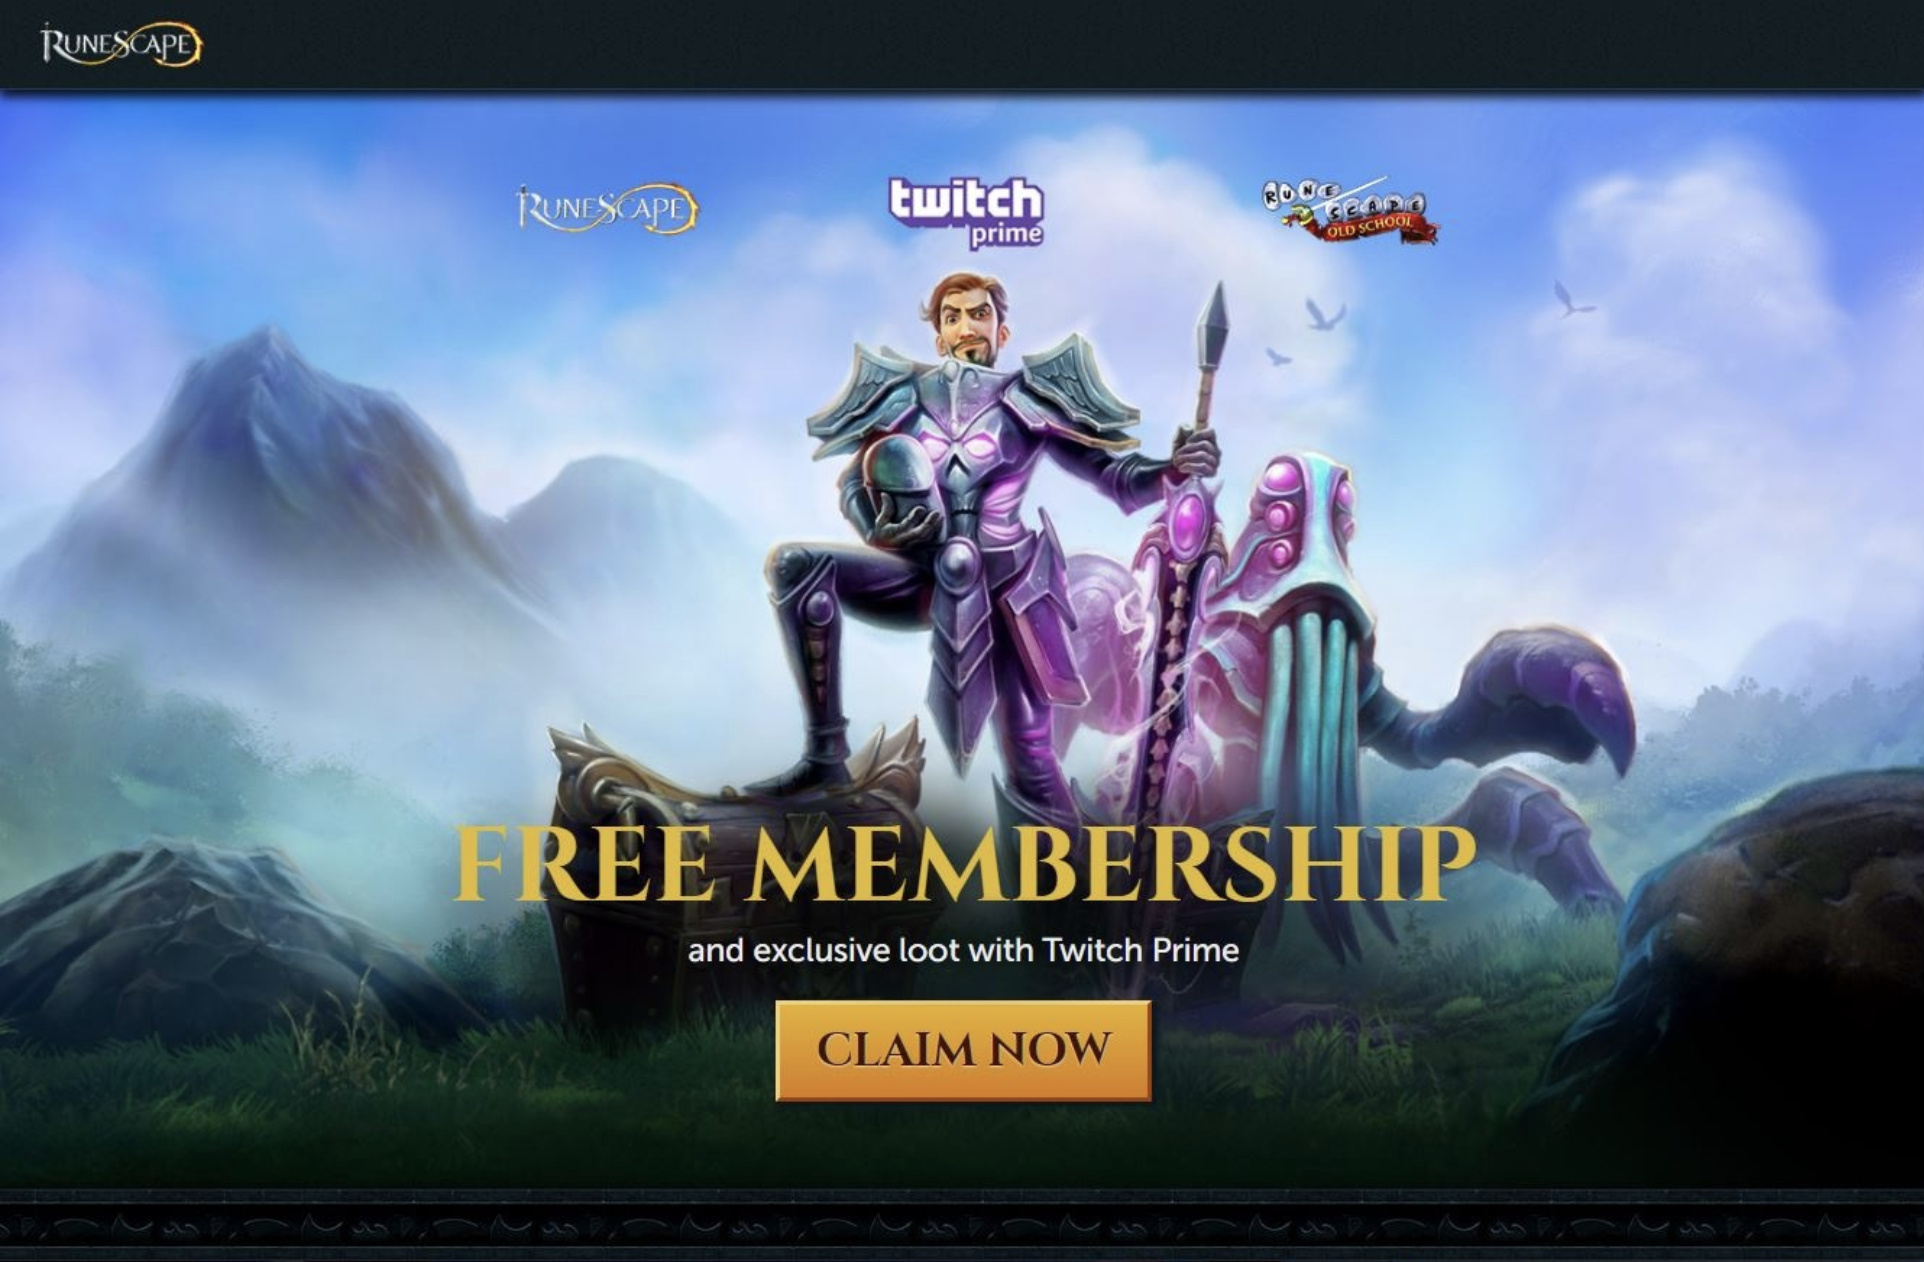 The RS prime website